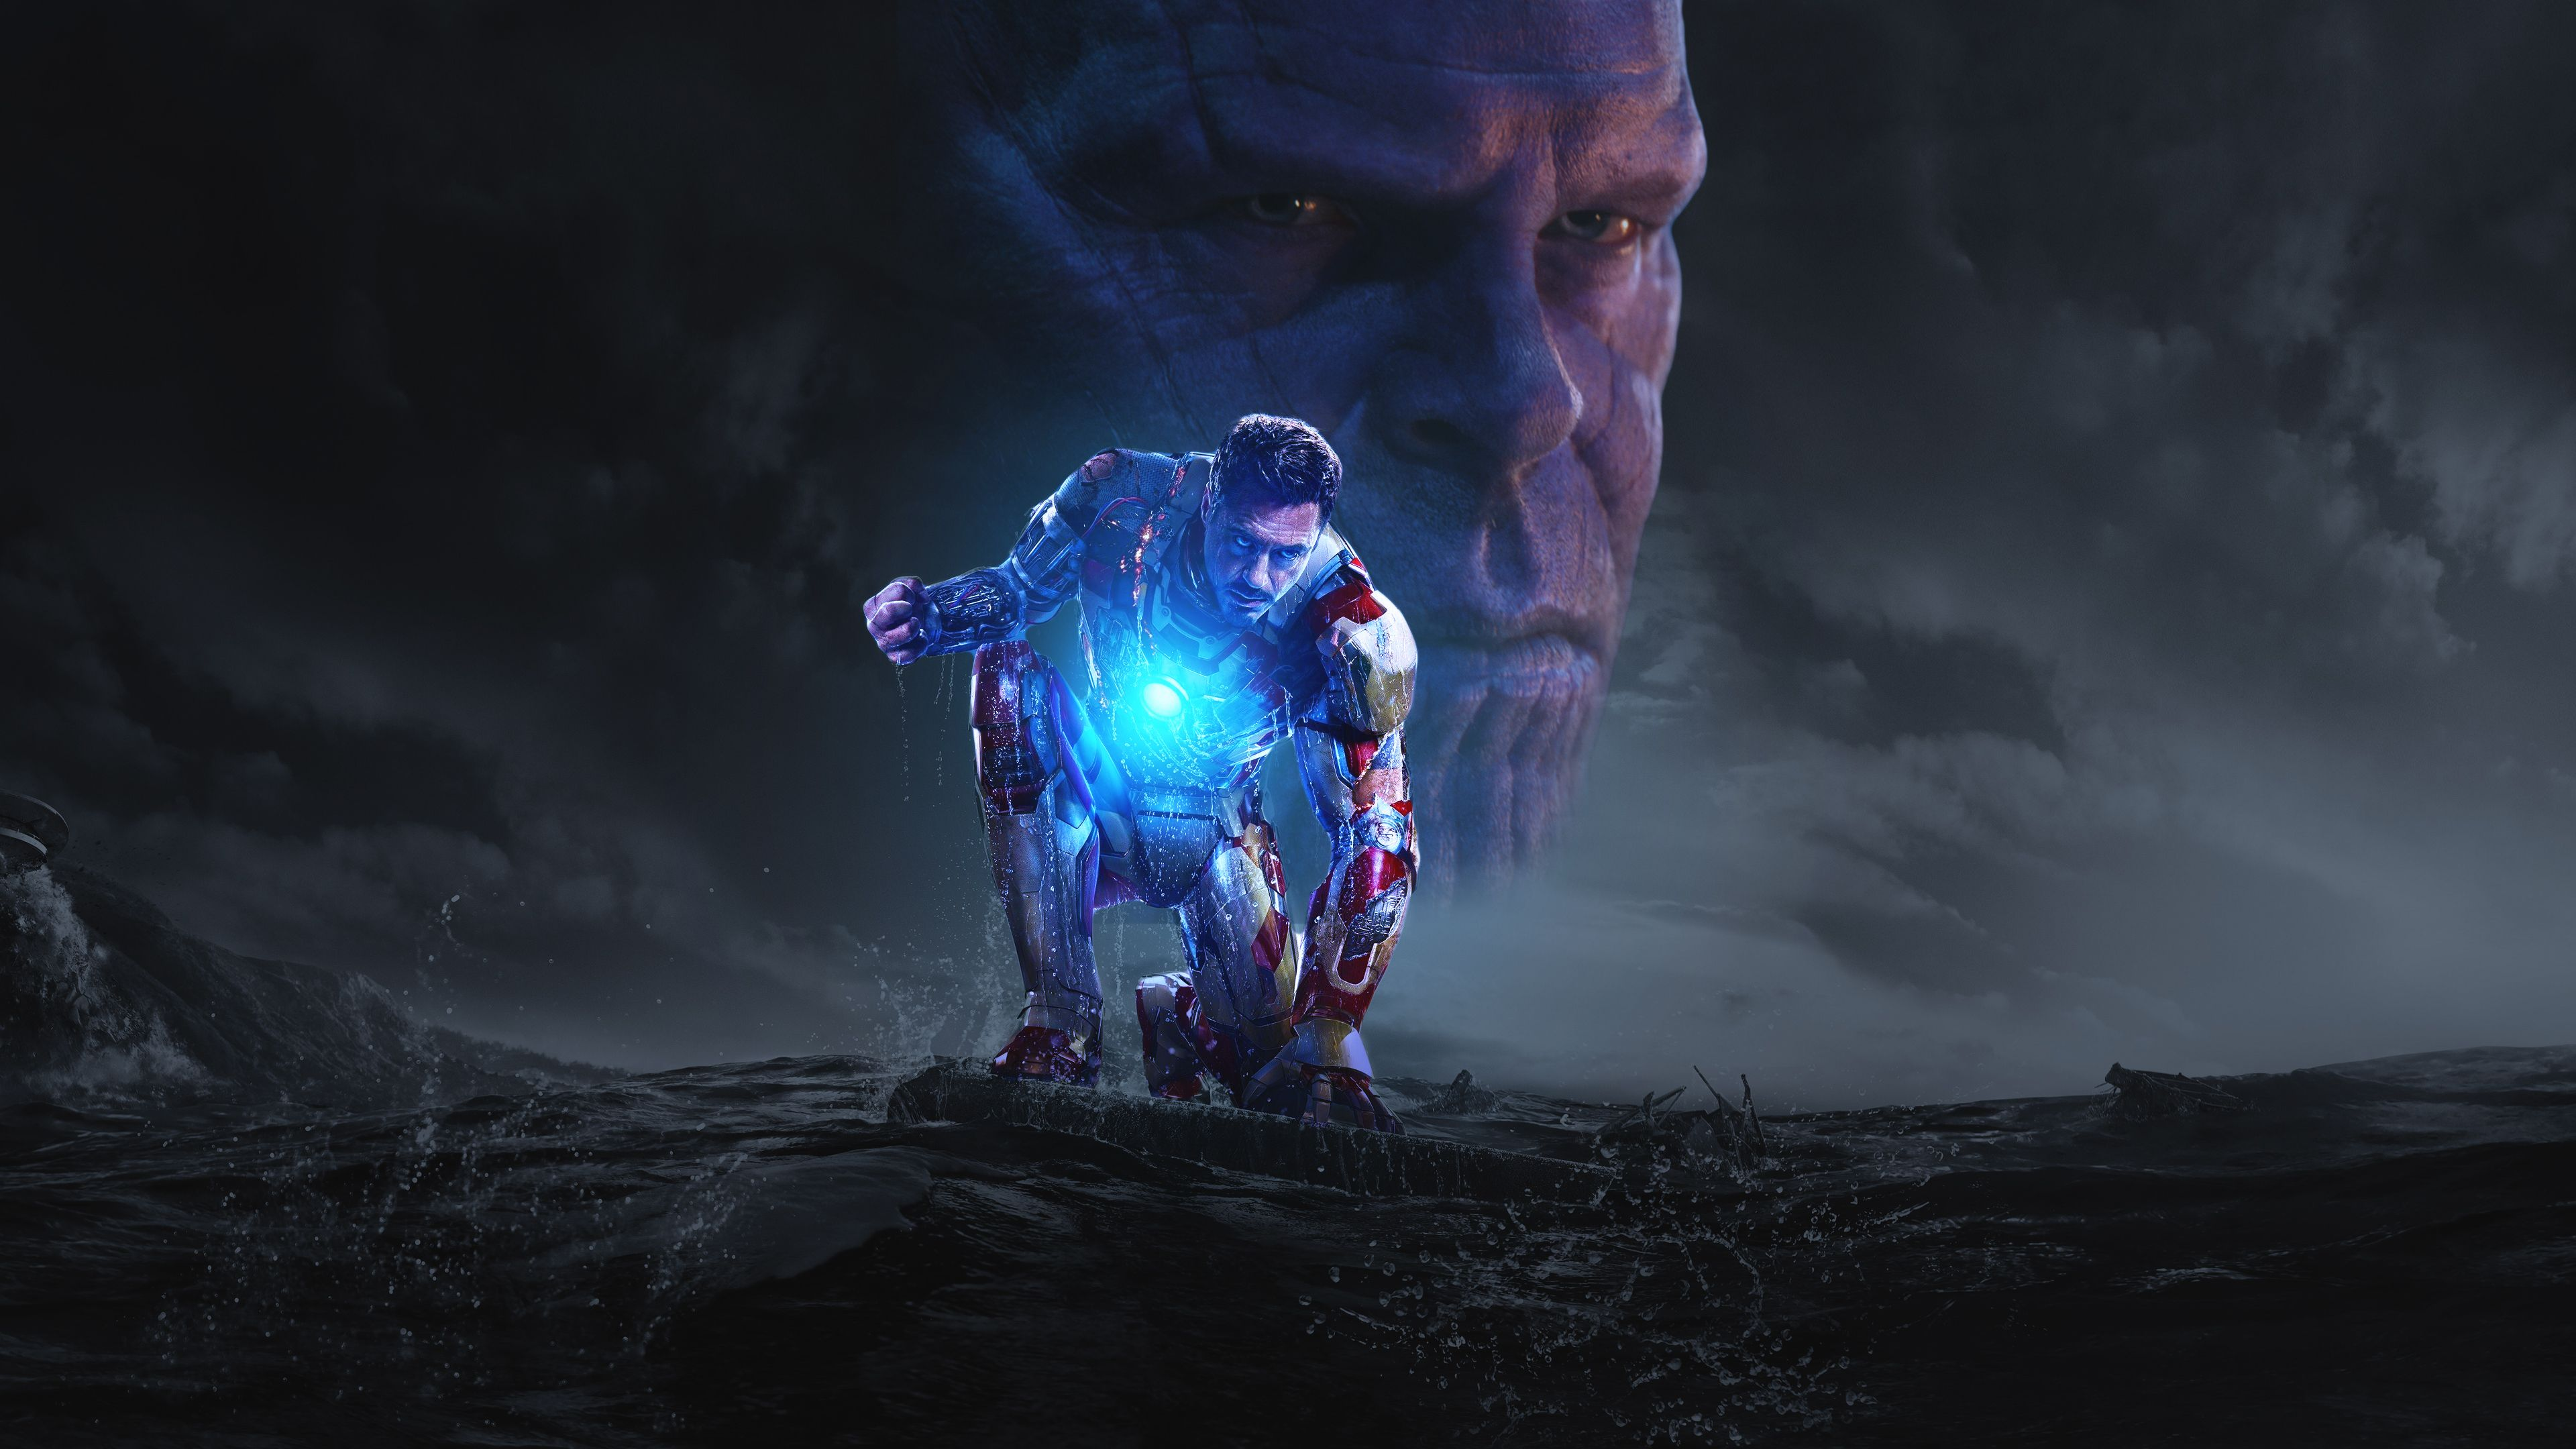 Avengers Infinity War 4k Ultra Hd Wallpaper And Background Image 3840x2160 Id 910510 Iron Man Wallpaper Iron Man Avengers Infinity War